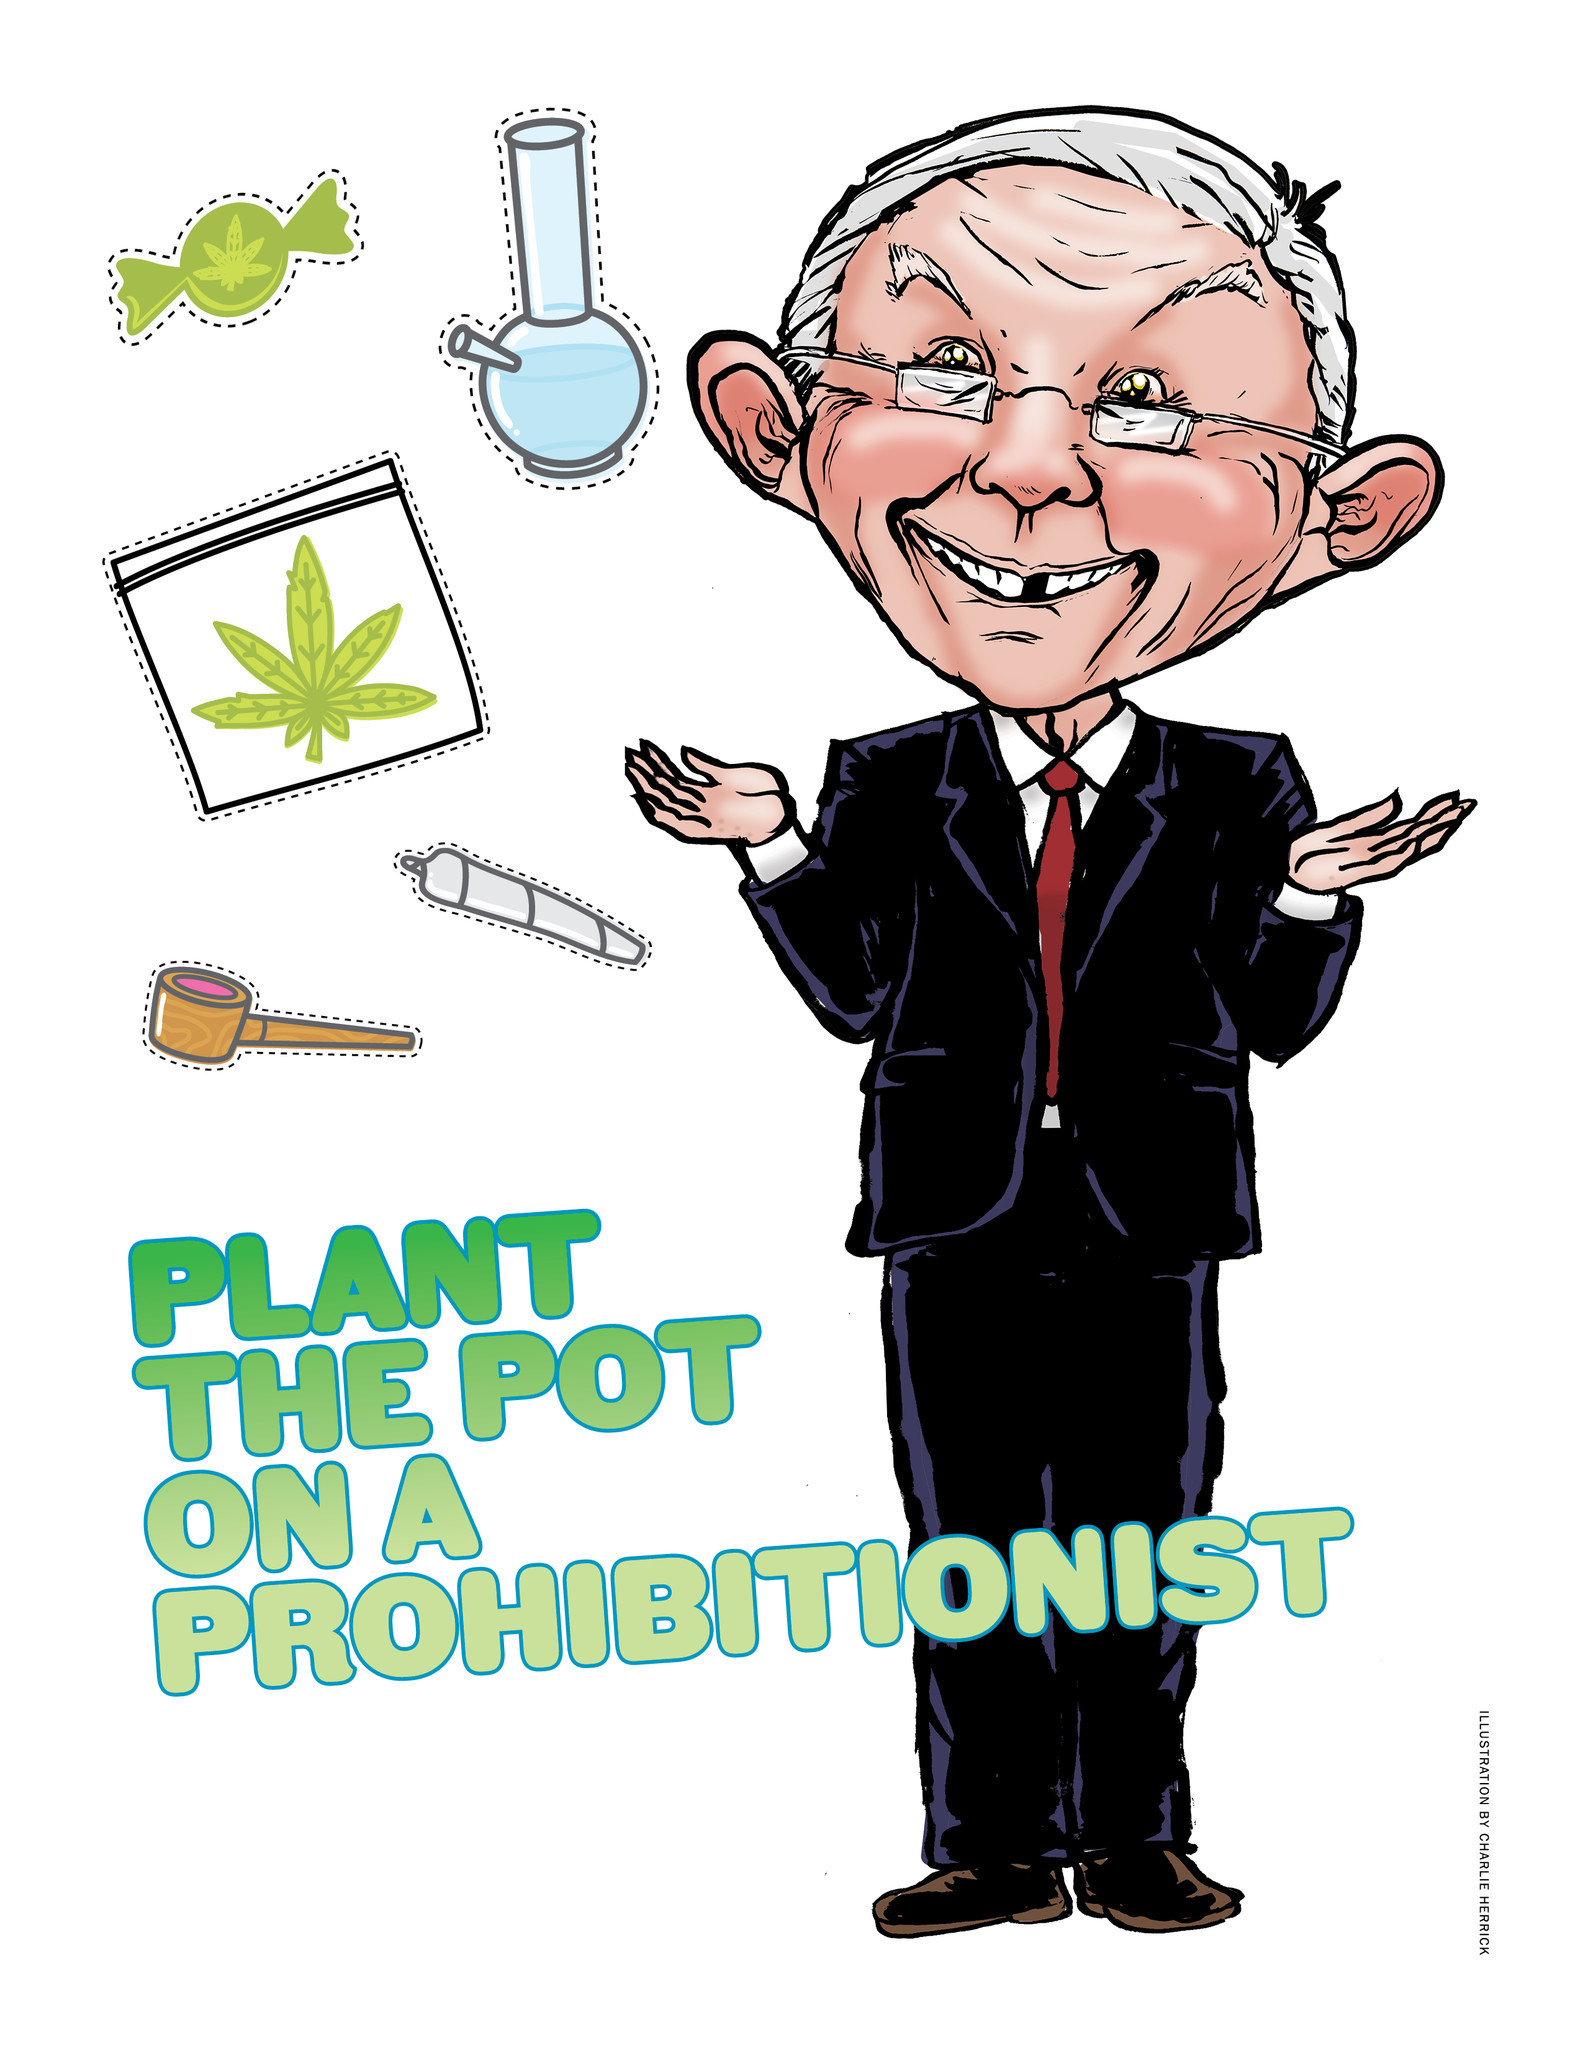 Plant the Pot on the Prohibitionist